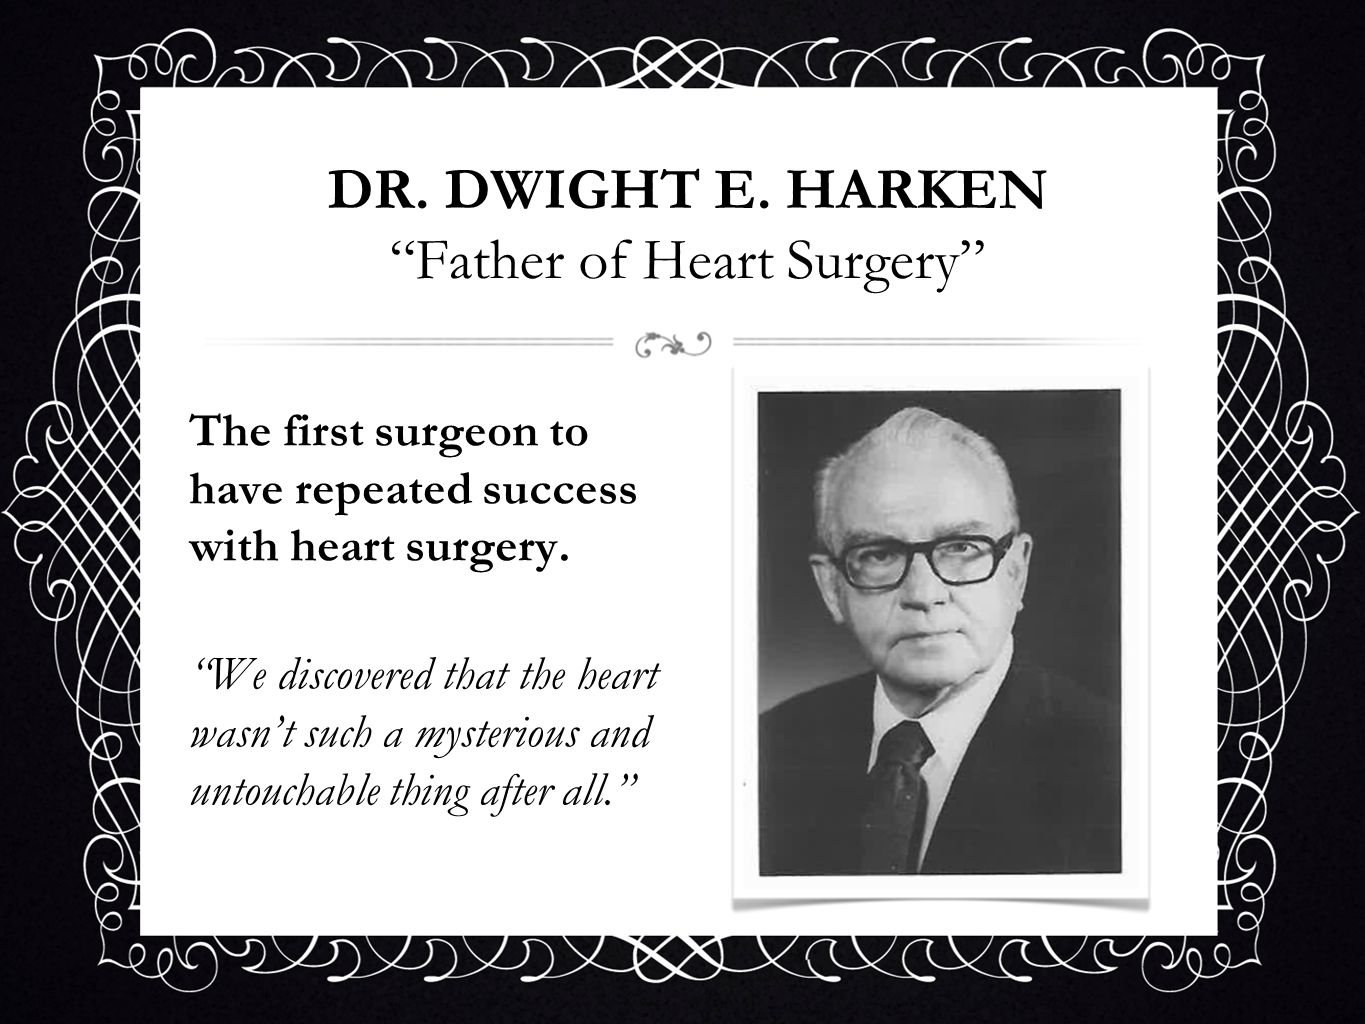 DR. DWIGHT E. HARKEN Father of Heart Surgery